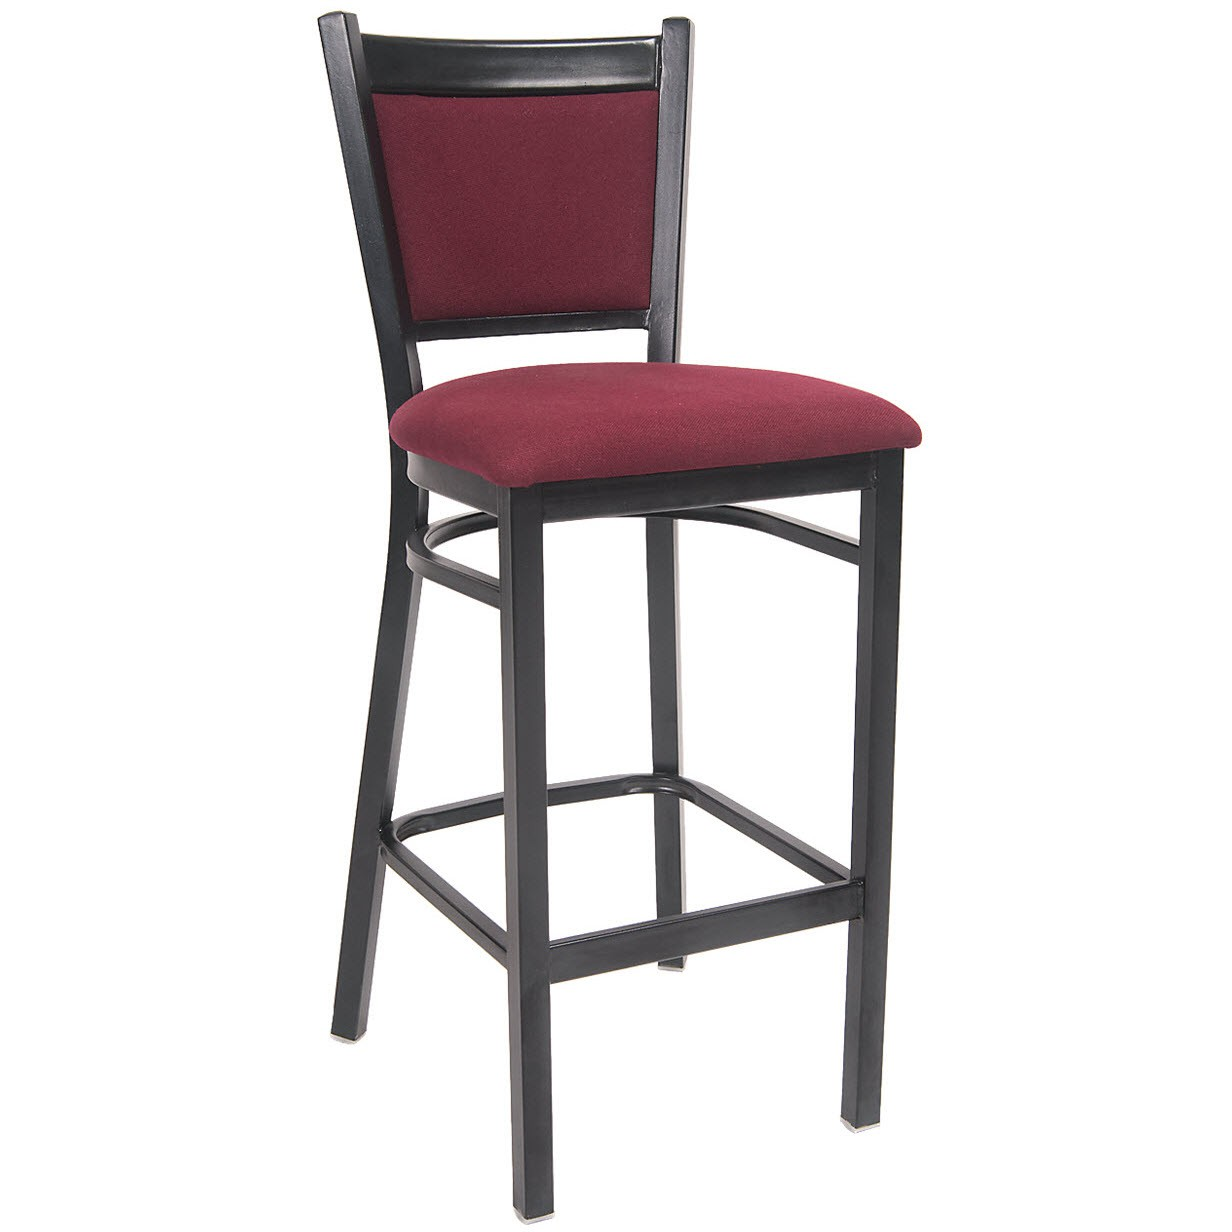 Black Metal Bar Stool With Burgundy Fabric Seat And Back